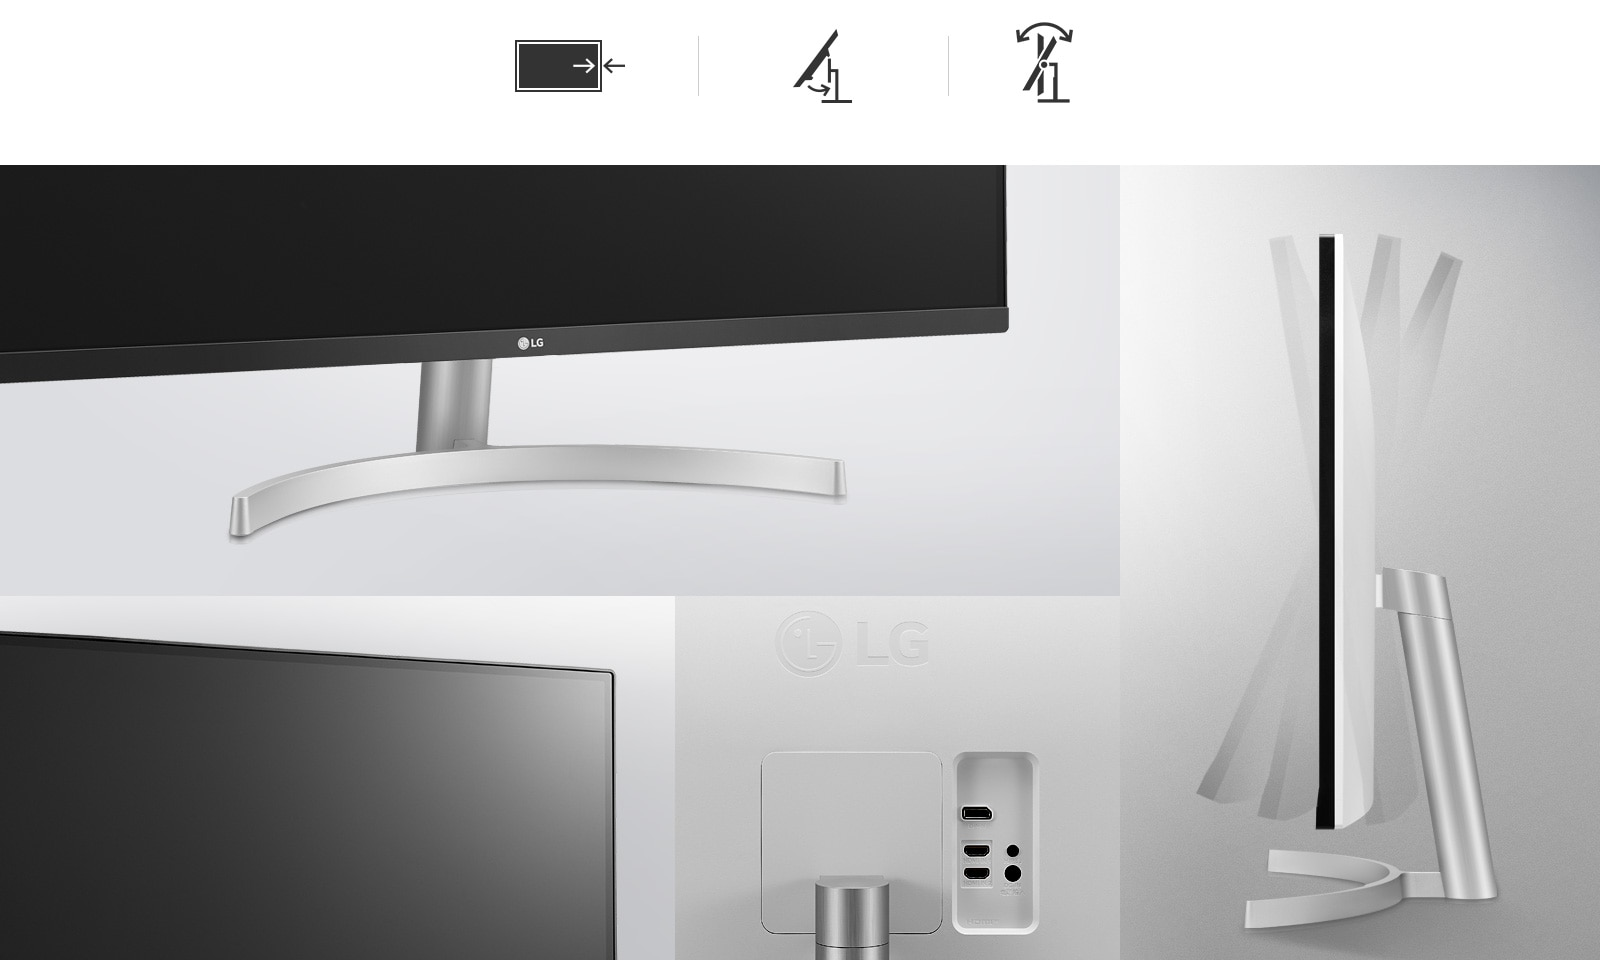 Tilt adjustment, One-Click stand, and 3-Side Virtually Borderless design